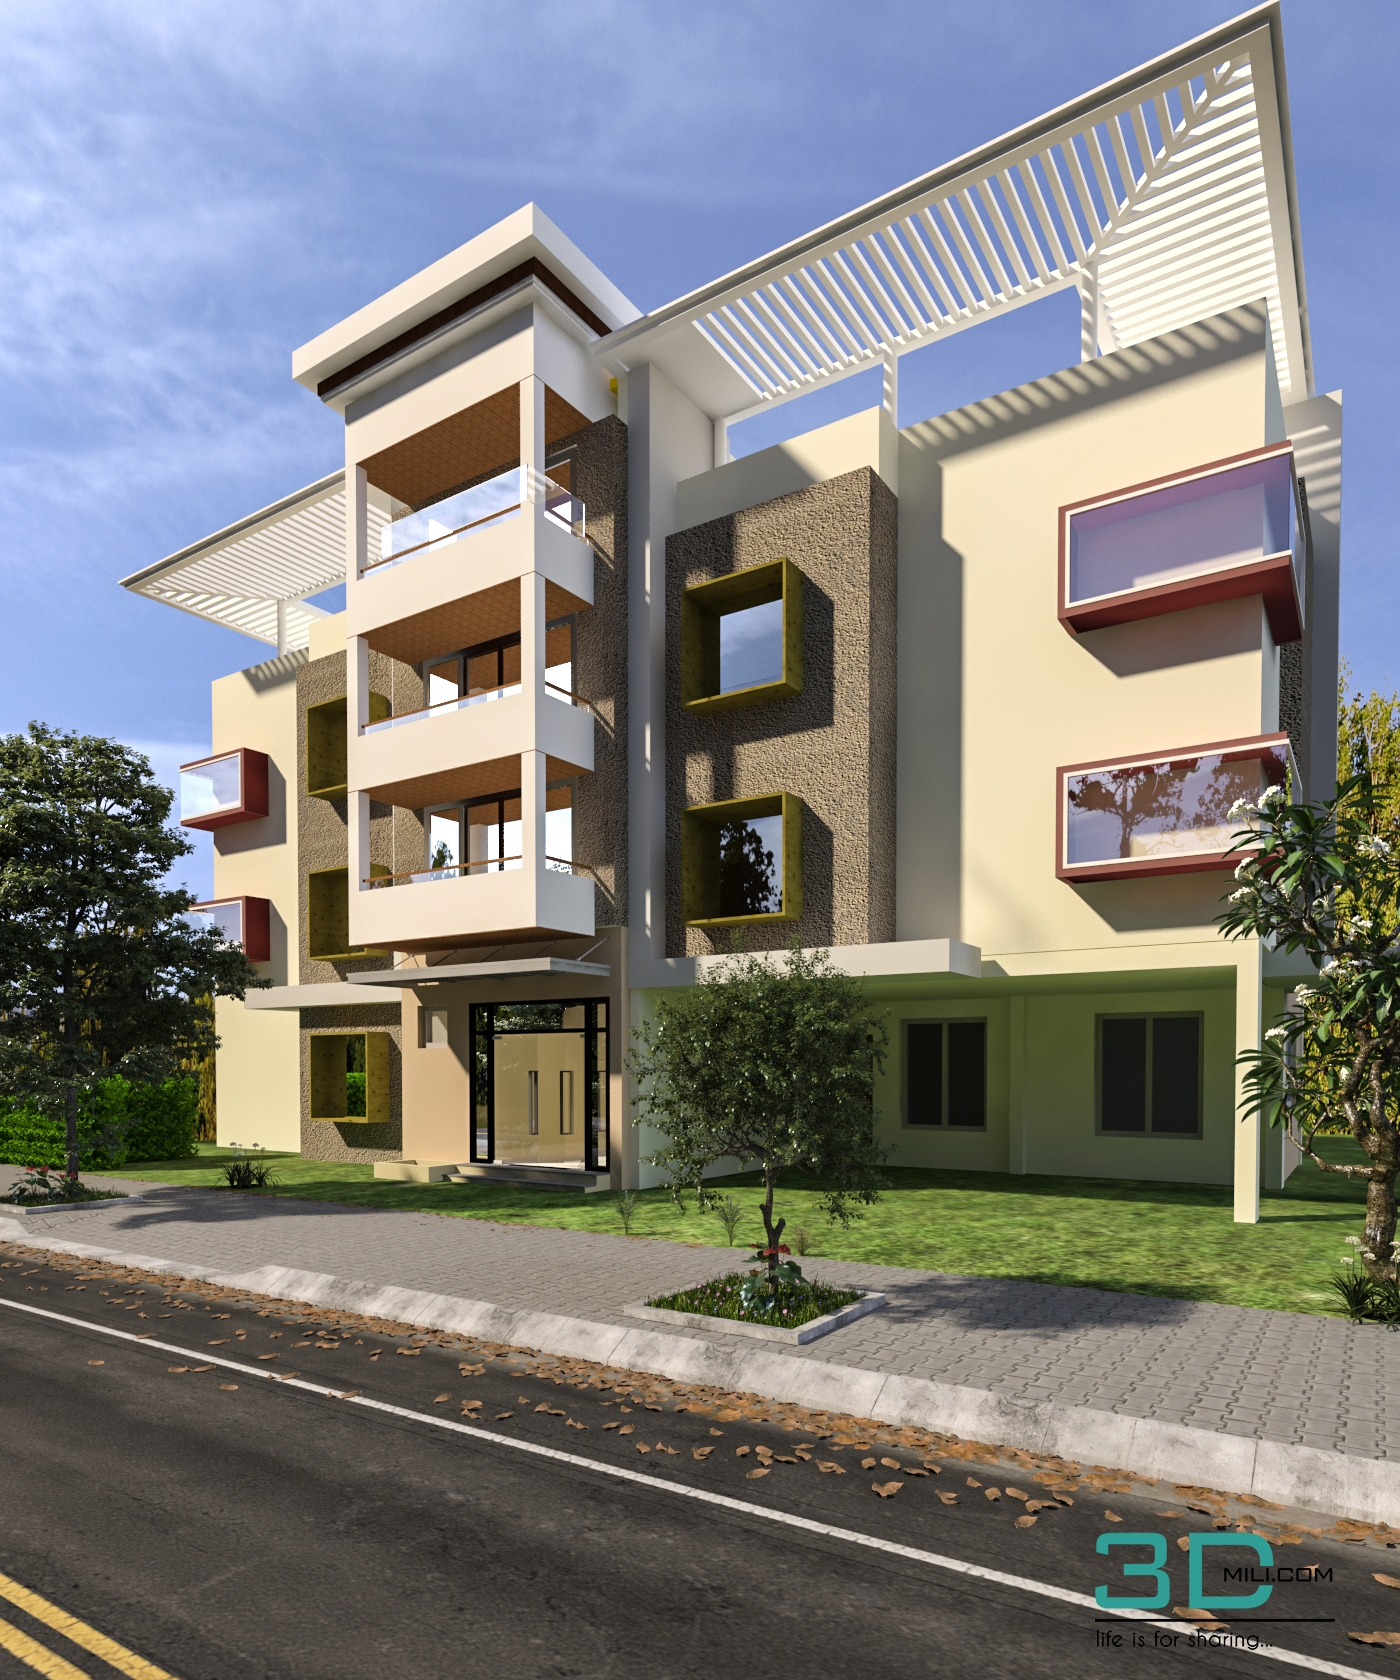 Commercial Building Design And Render In 3d Max With - free download 3d models 3d max